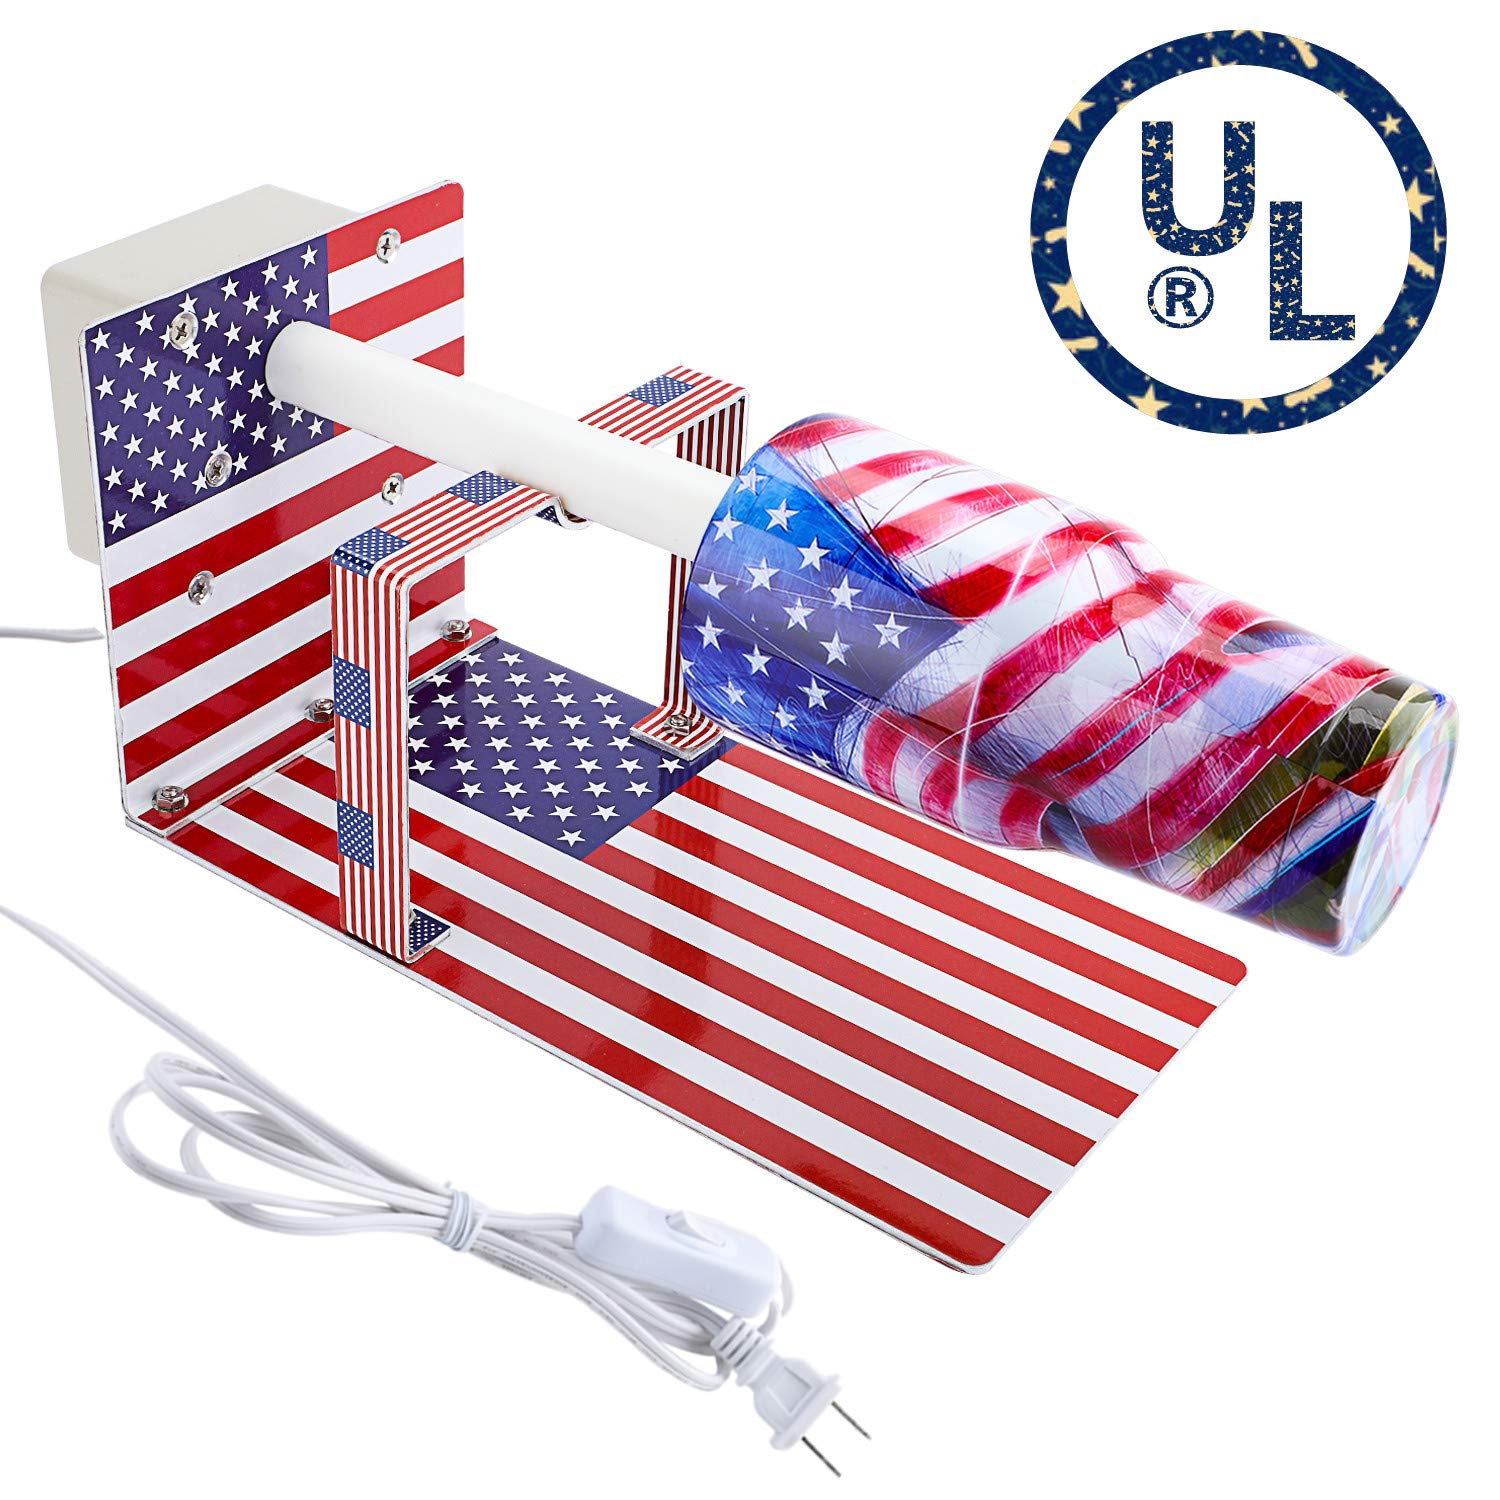 Cup Turner Spinner for Crafts Tumbler, Tumbler Turner Machine Cuptisserie Epoxy Machine with Professional Silent Balance Steering Shaft (US Flag) by HULUYAO